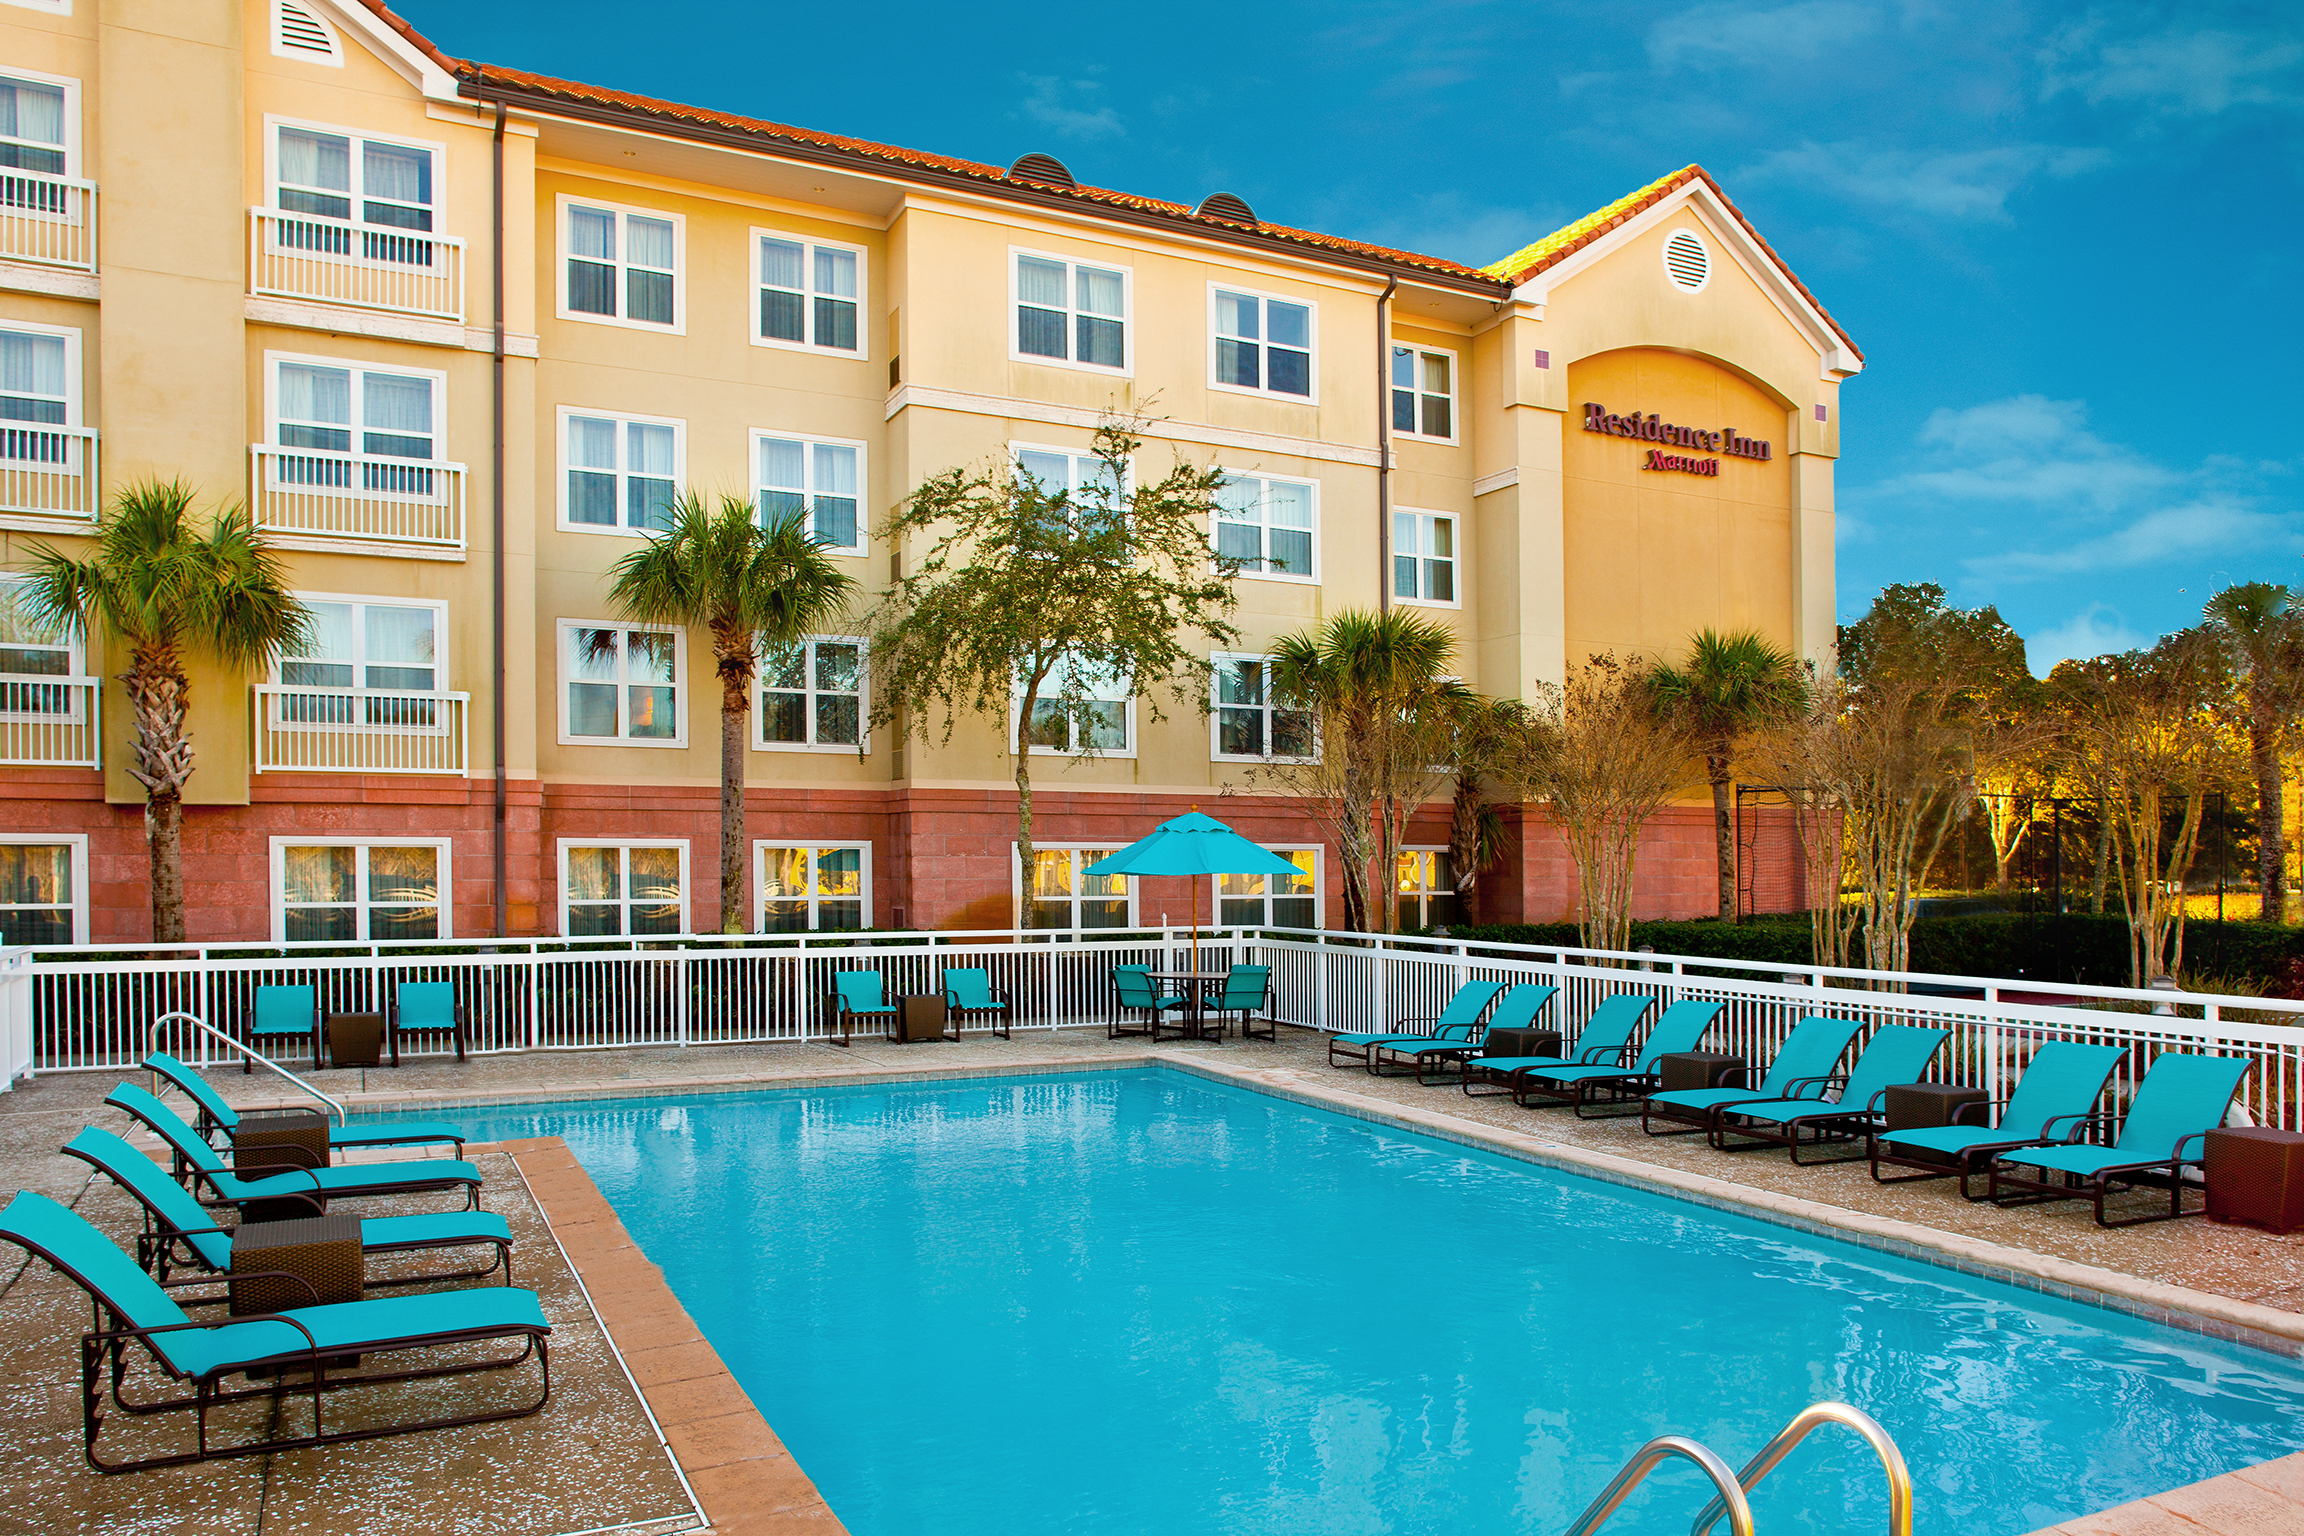 Residence inn sandestin at grand boulevard in destin fl for Mitchell s fish market destin